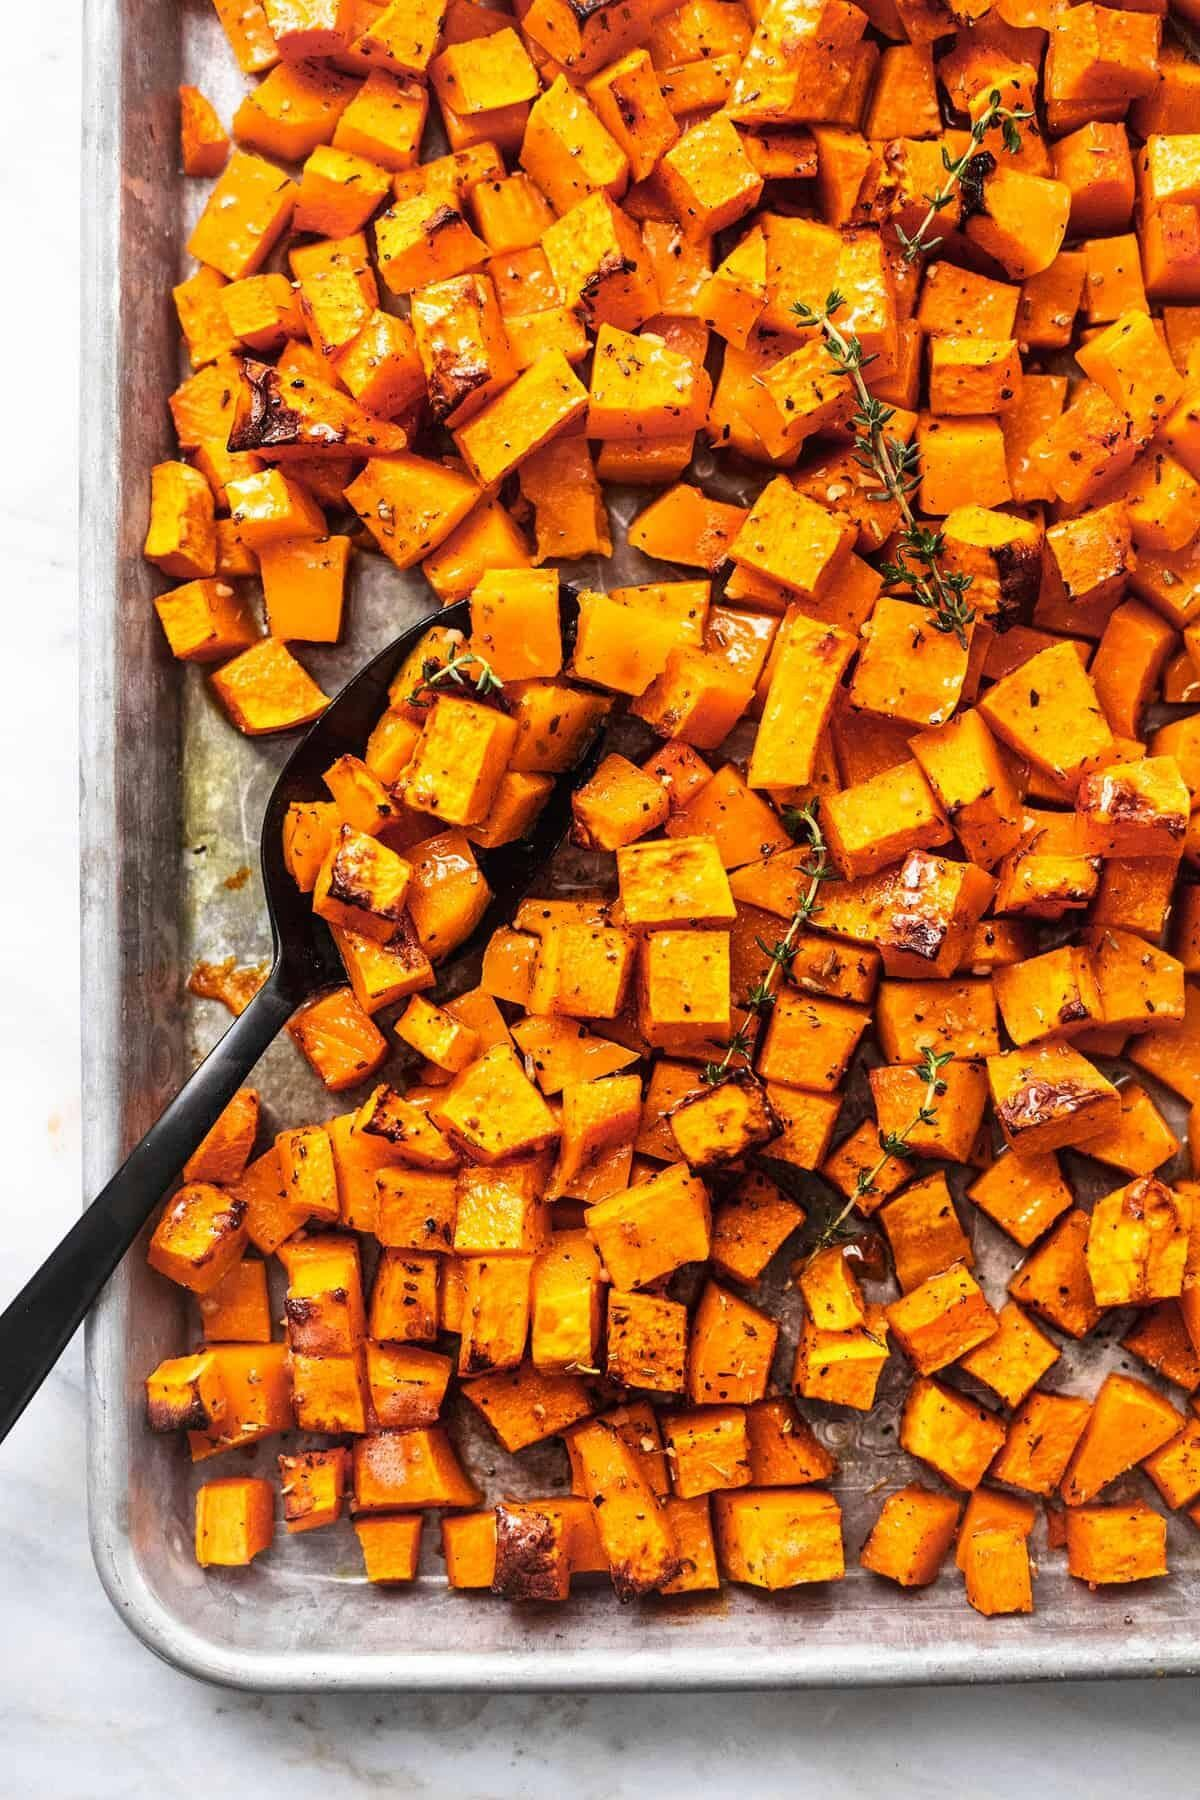 35 Butternut Squash Recipes To Make This Fall Butternut Squash Recipes Butternut Squash Recipes Roasted Oven Roasted Butternut Squash